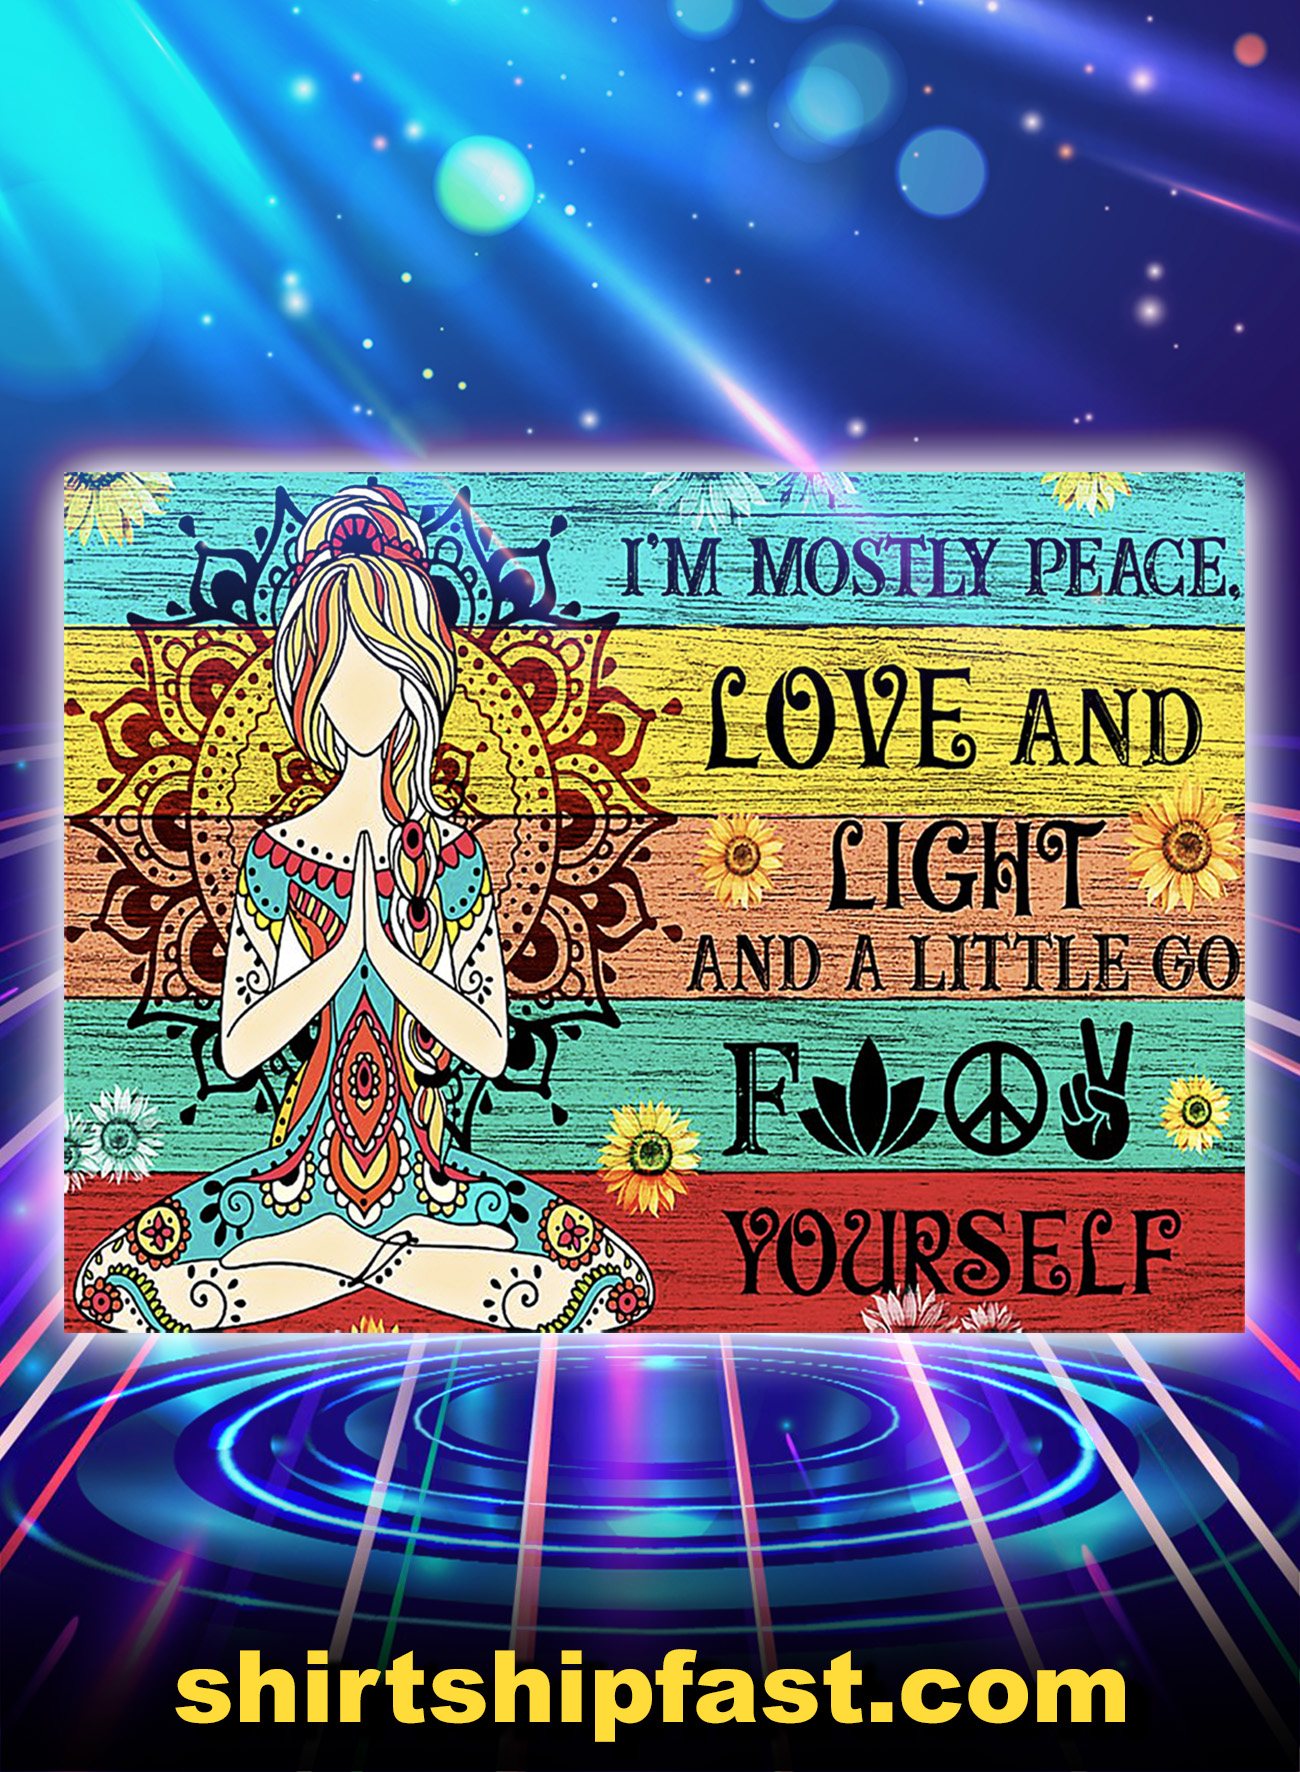 Yoga meditation I'm mostly peace love and light poster - A1